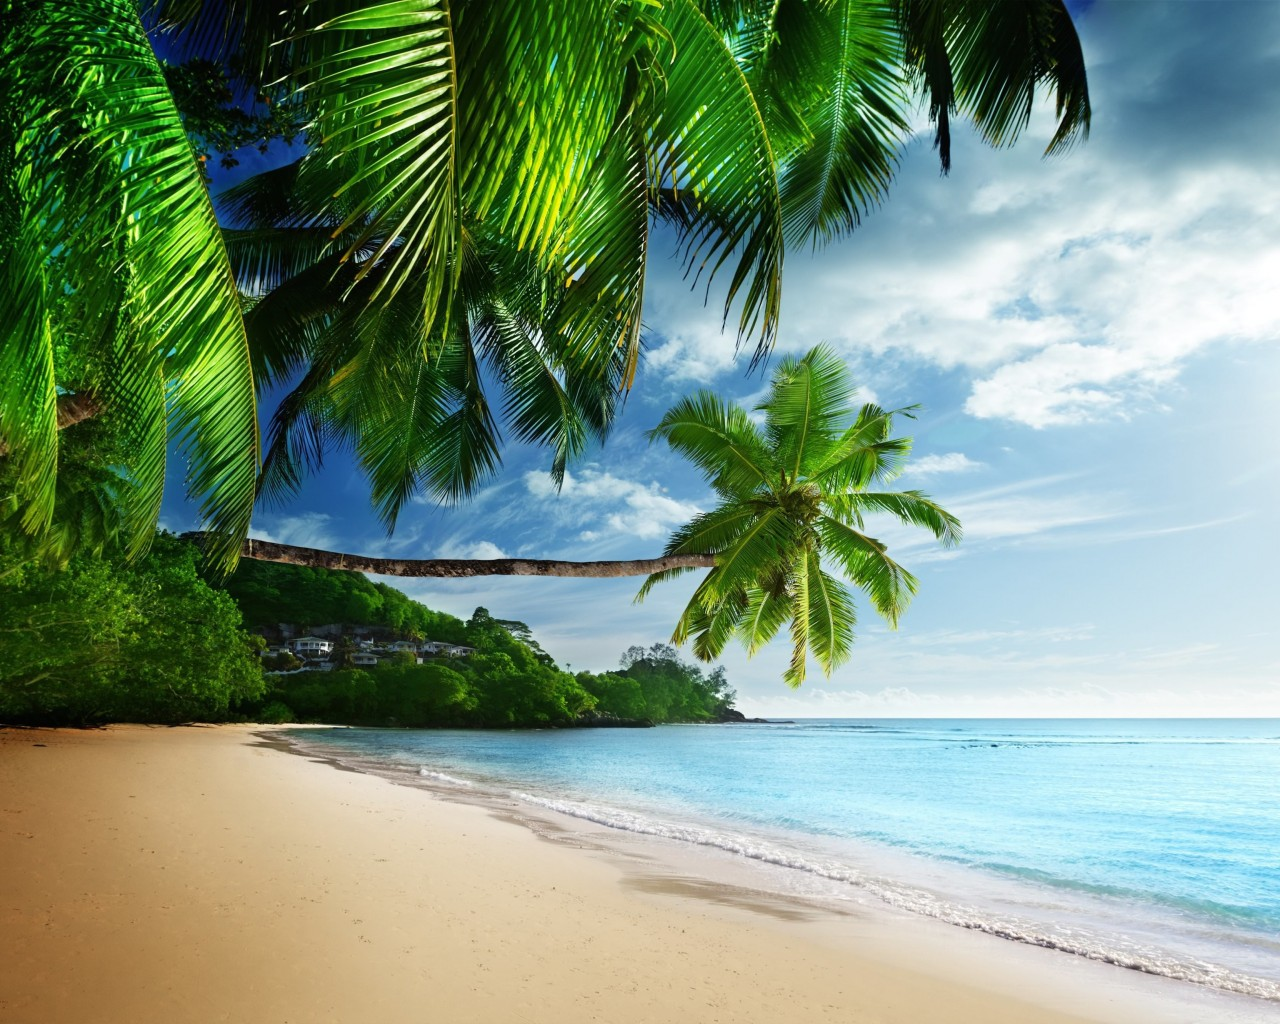 Tropical Paradise Beach Wallpaper for Desktop 1280x1024